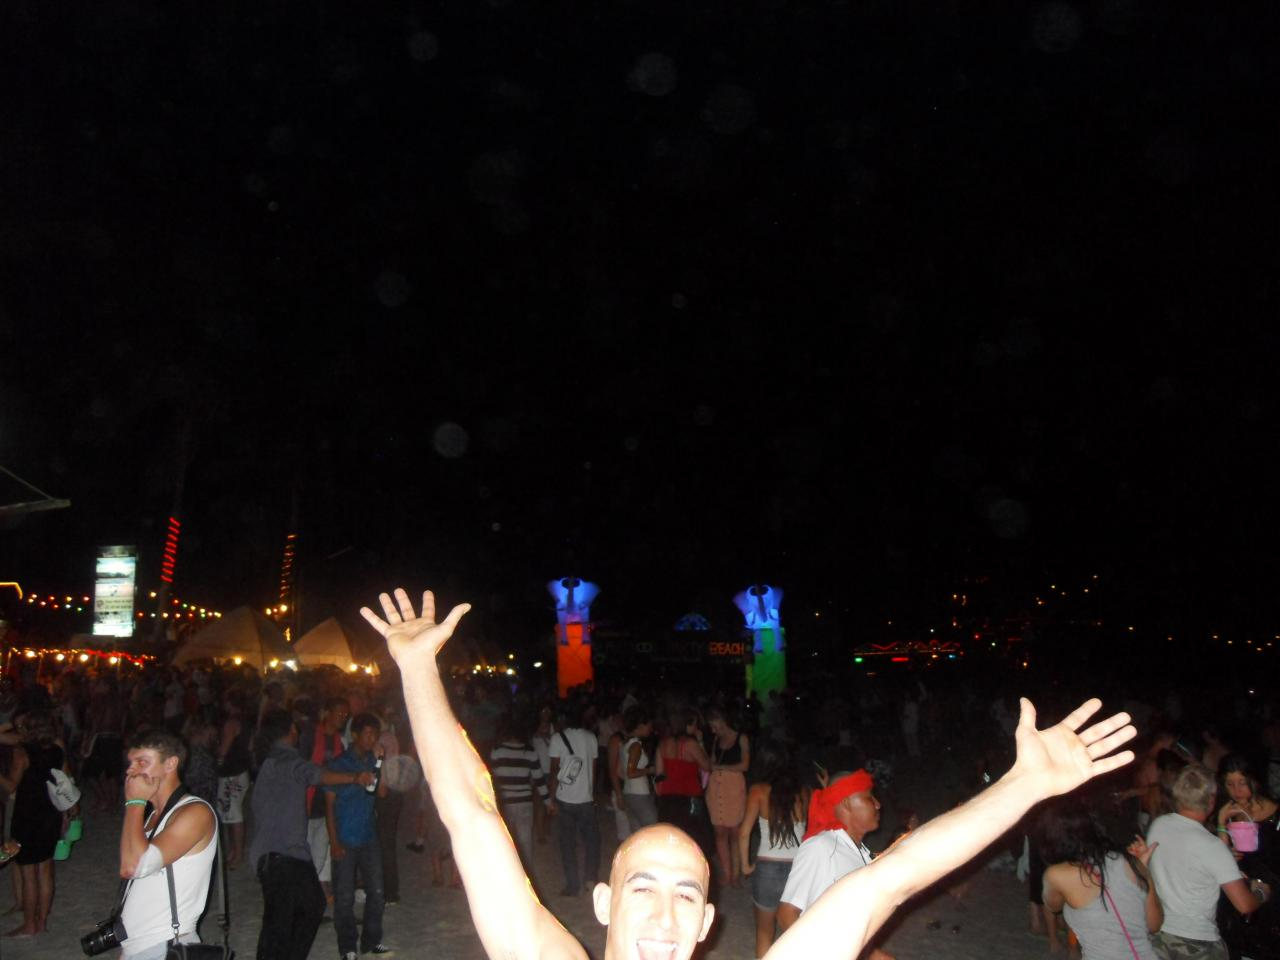 Excited to be at Full Moon Party (this is not me)